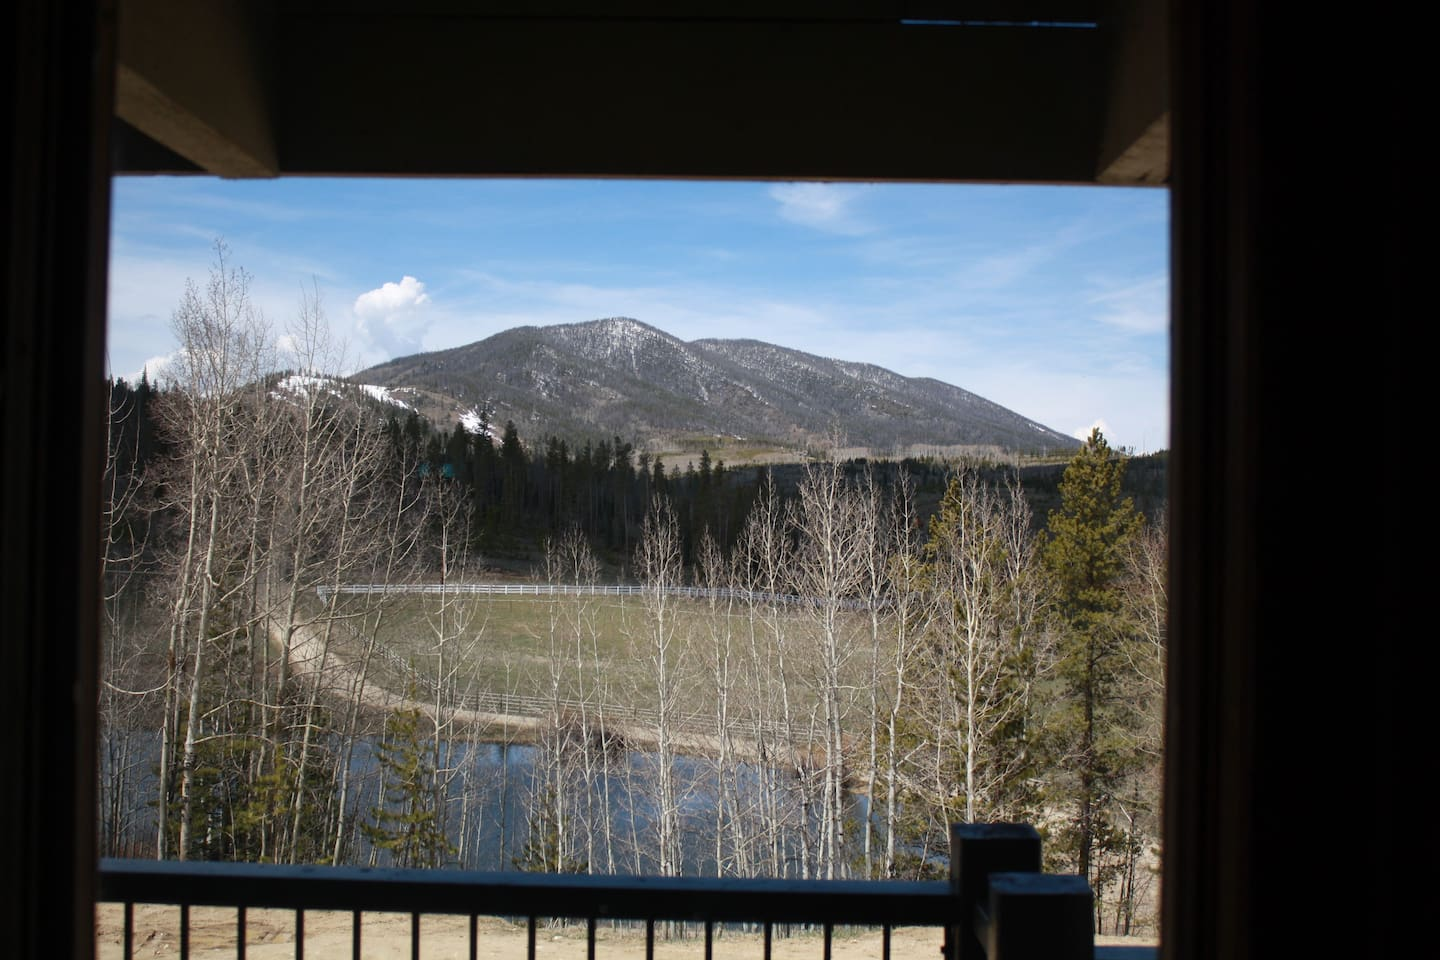 Looking out Valley View Window. A room with a view!